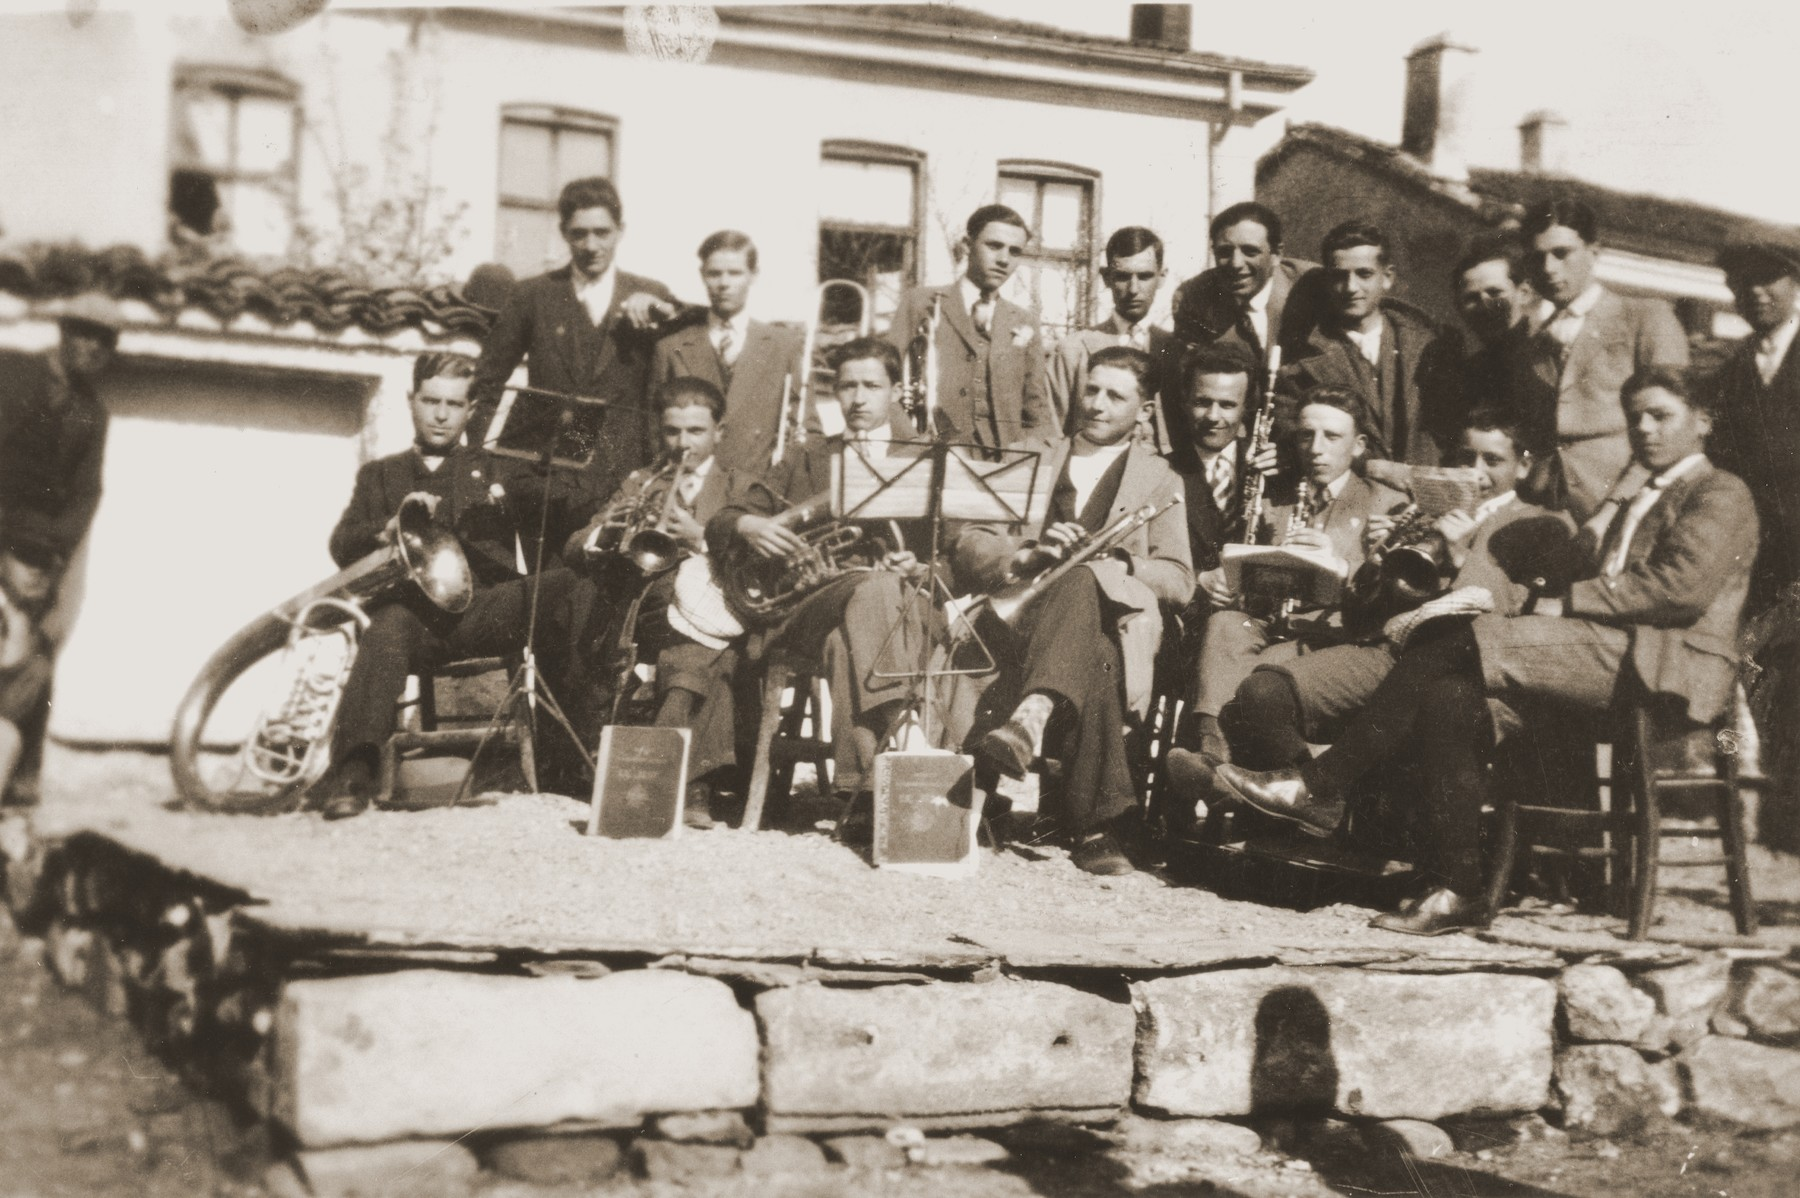 A group of Macedonian Jewish youth who are members of a band, pose with their instruments on a makeshift stage in Bitola, Macedonia.